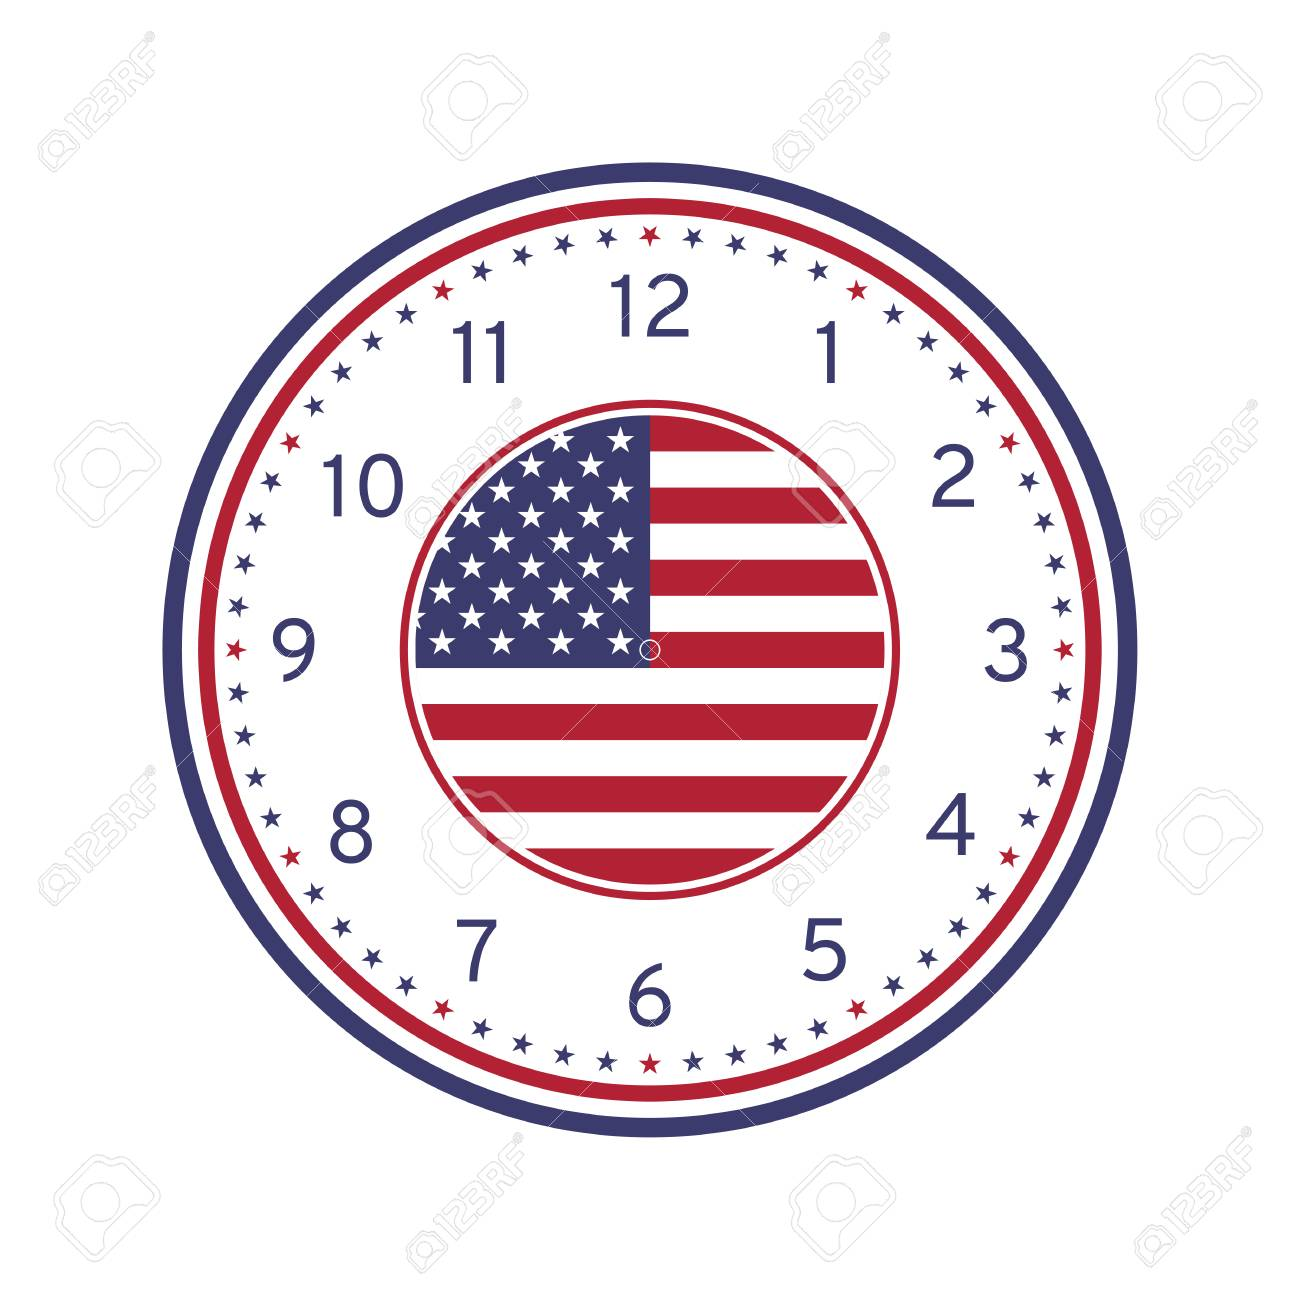 photograph relating to Printable Usa Flag known as United states Flag Printable Clock Experience Template Isolated upon White Historical past